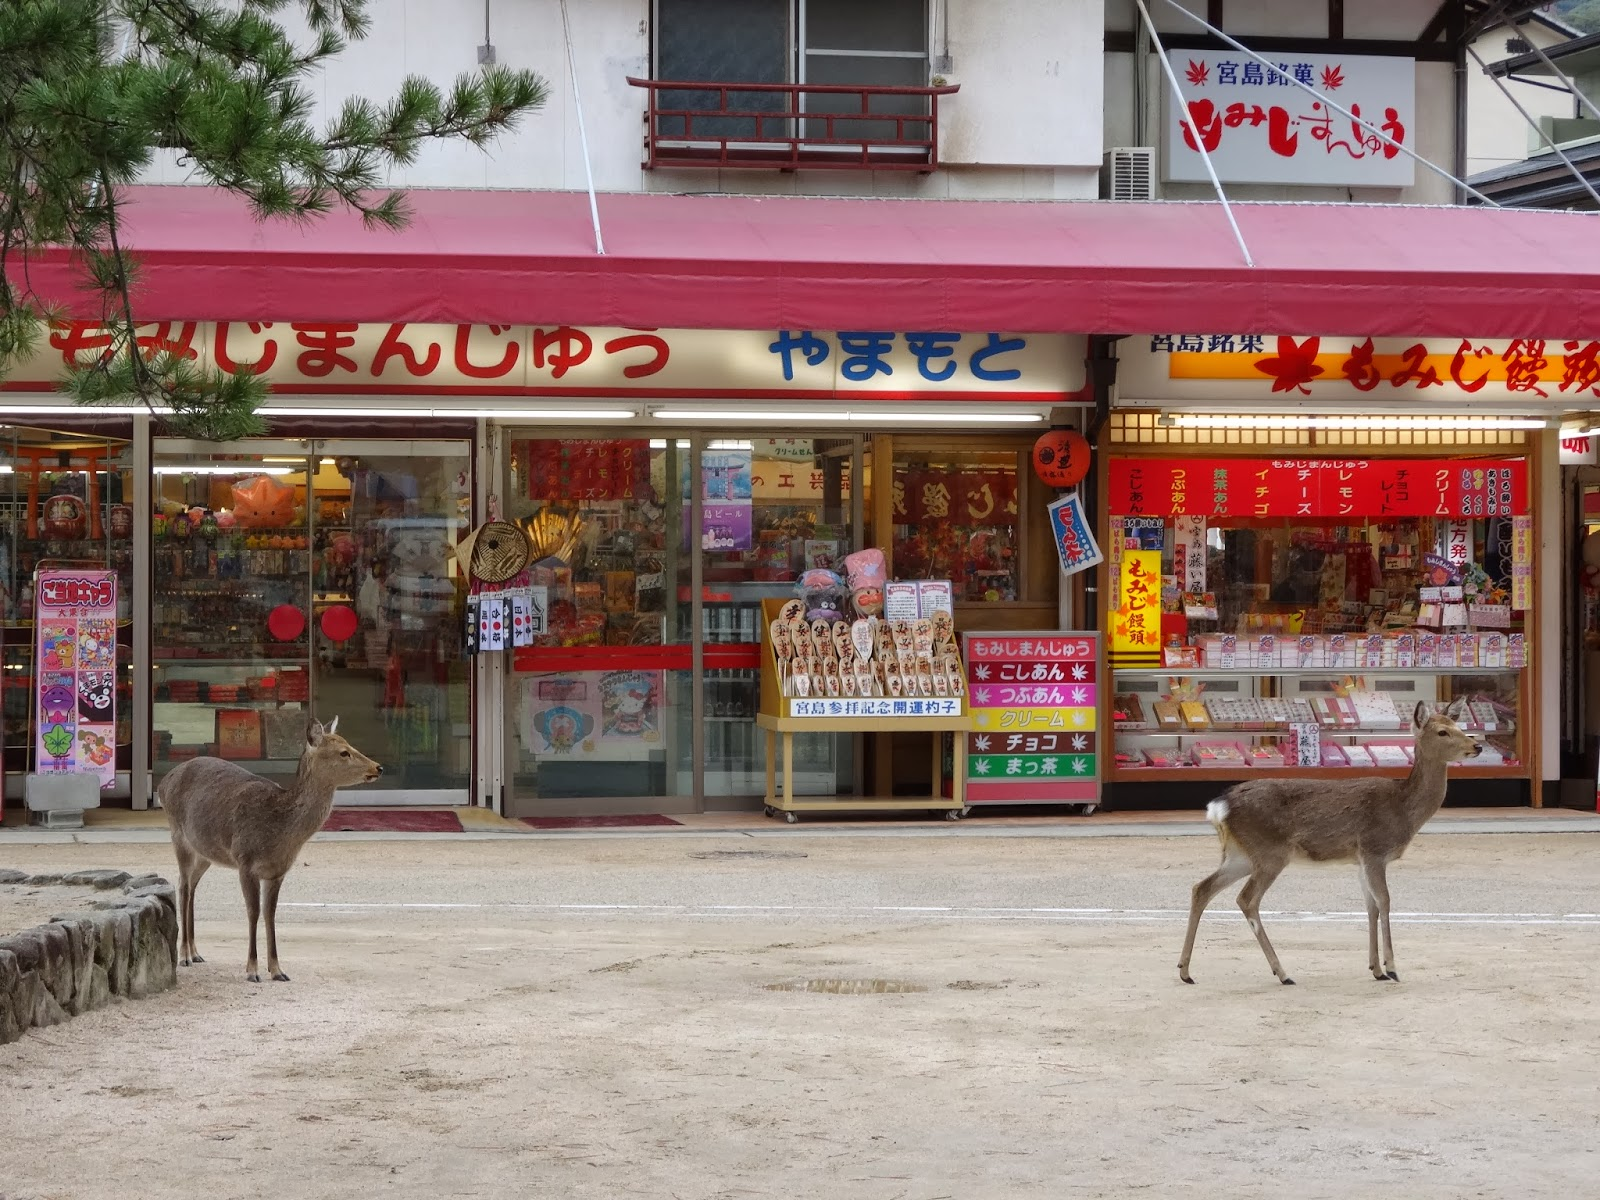 Deer in front of vibrant pink shopfront on Miyajima Island